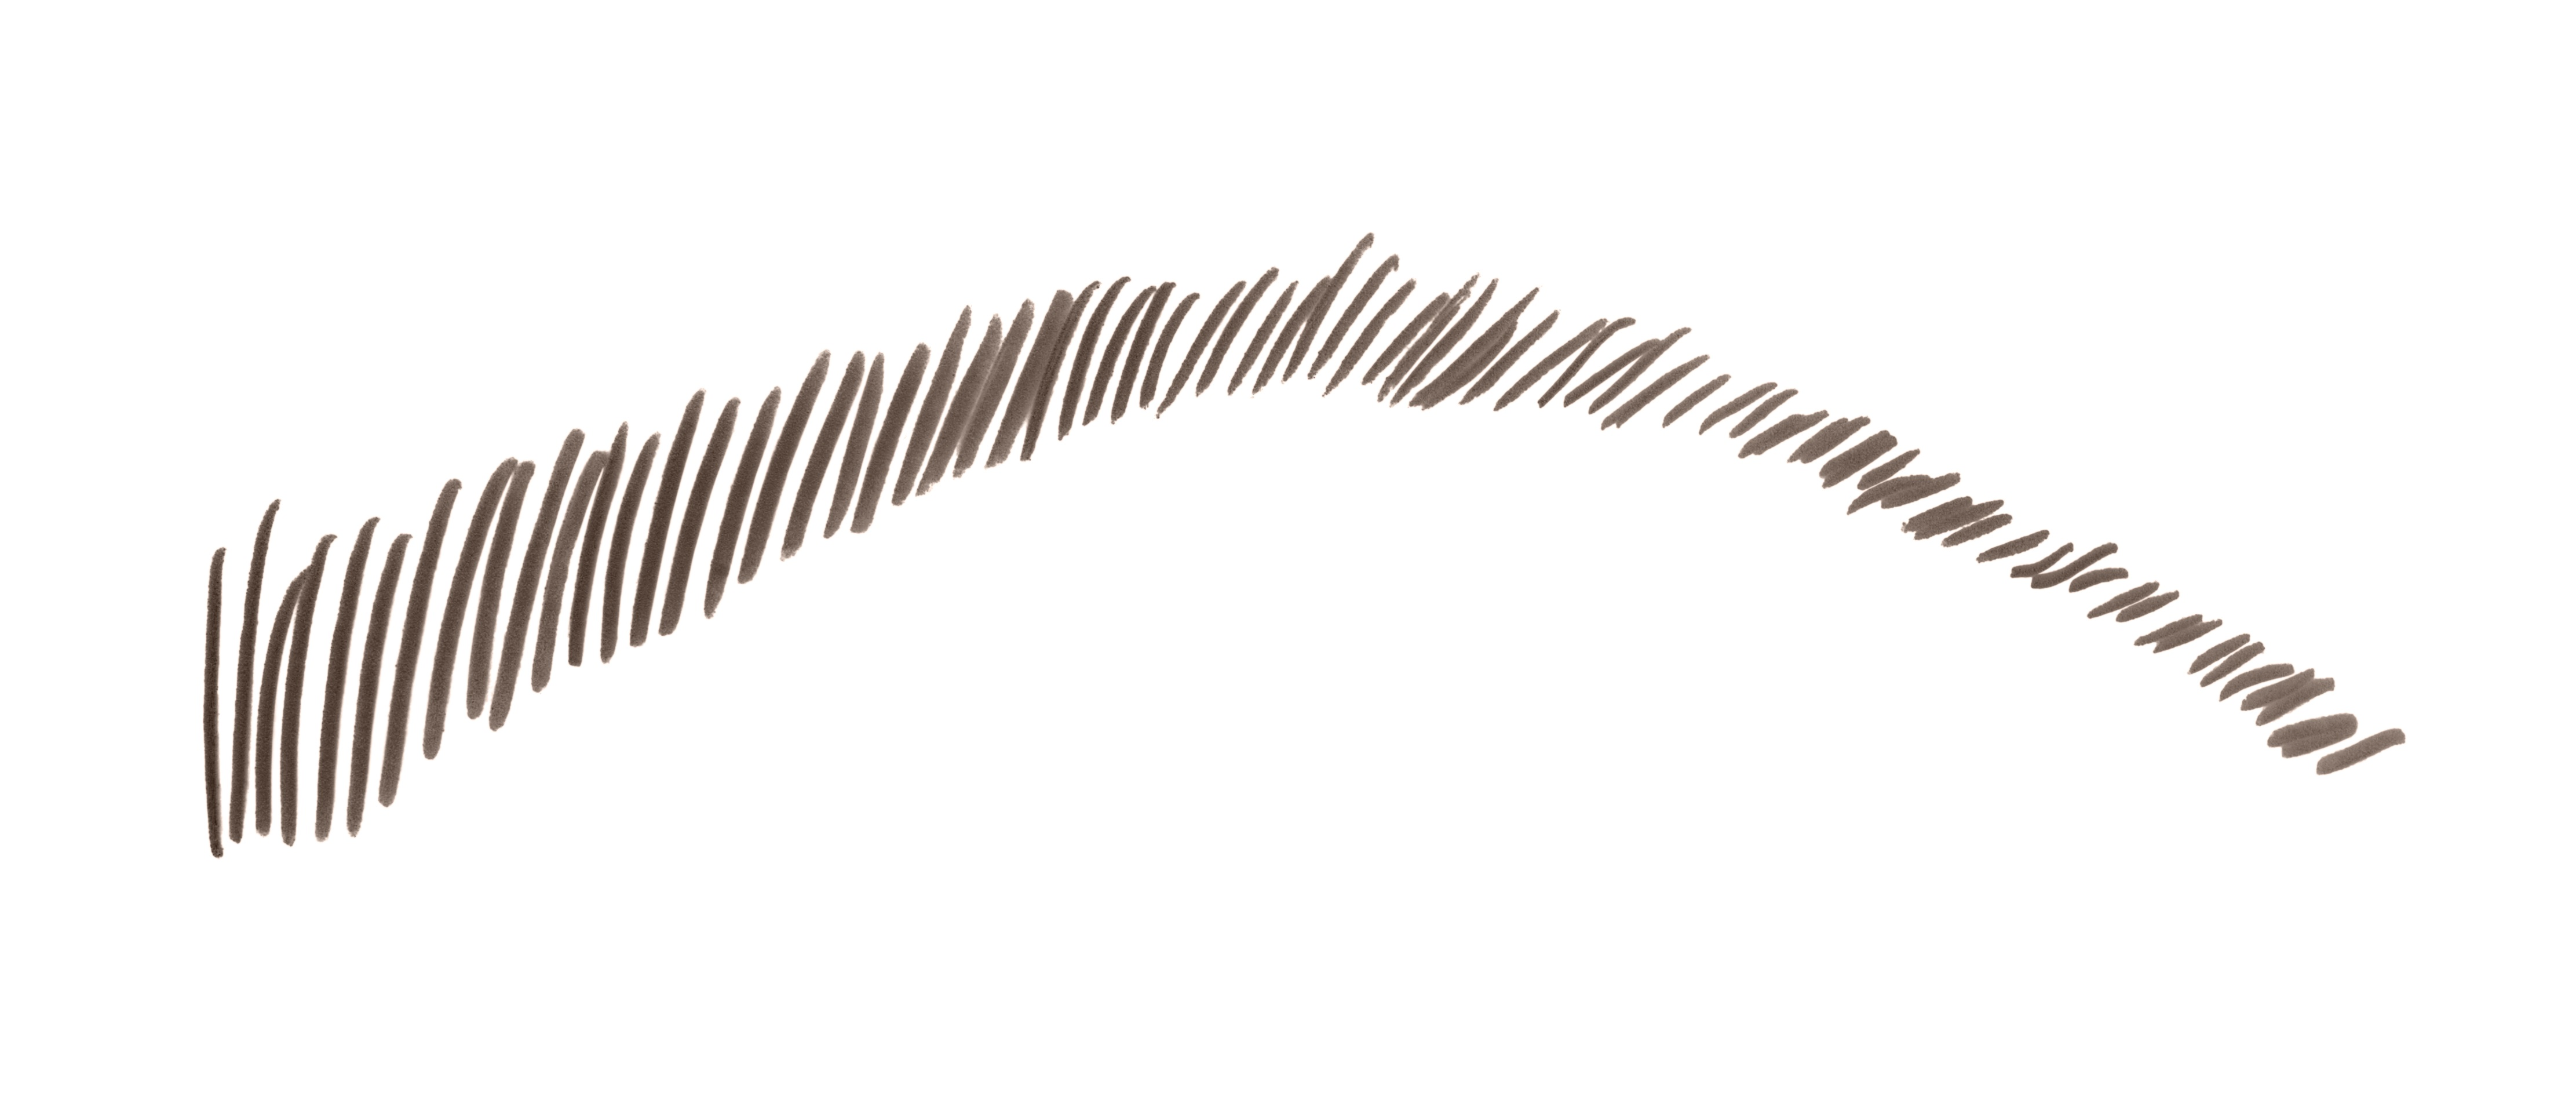 Precisely, My Brow Eyebrow Pencil Swatch -